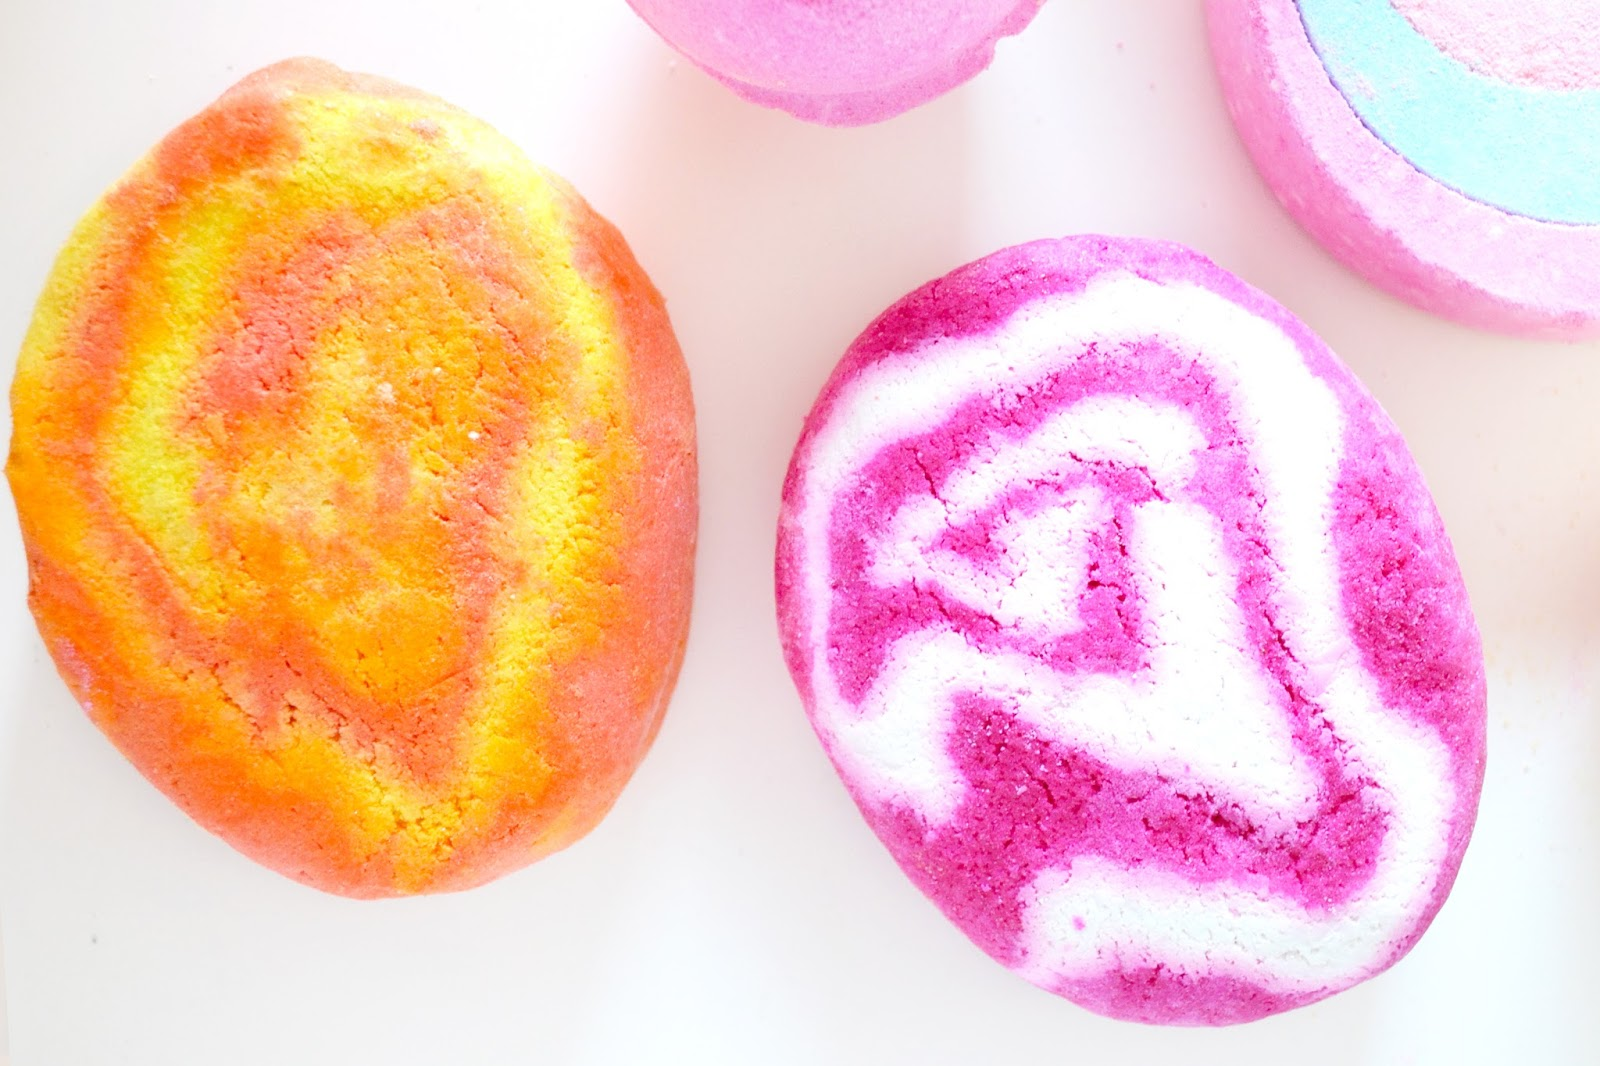 brightside bubble bar, the comforter bubble bar, bubble bars from lush